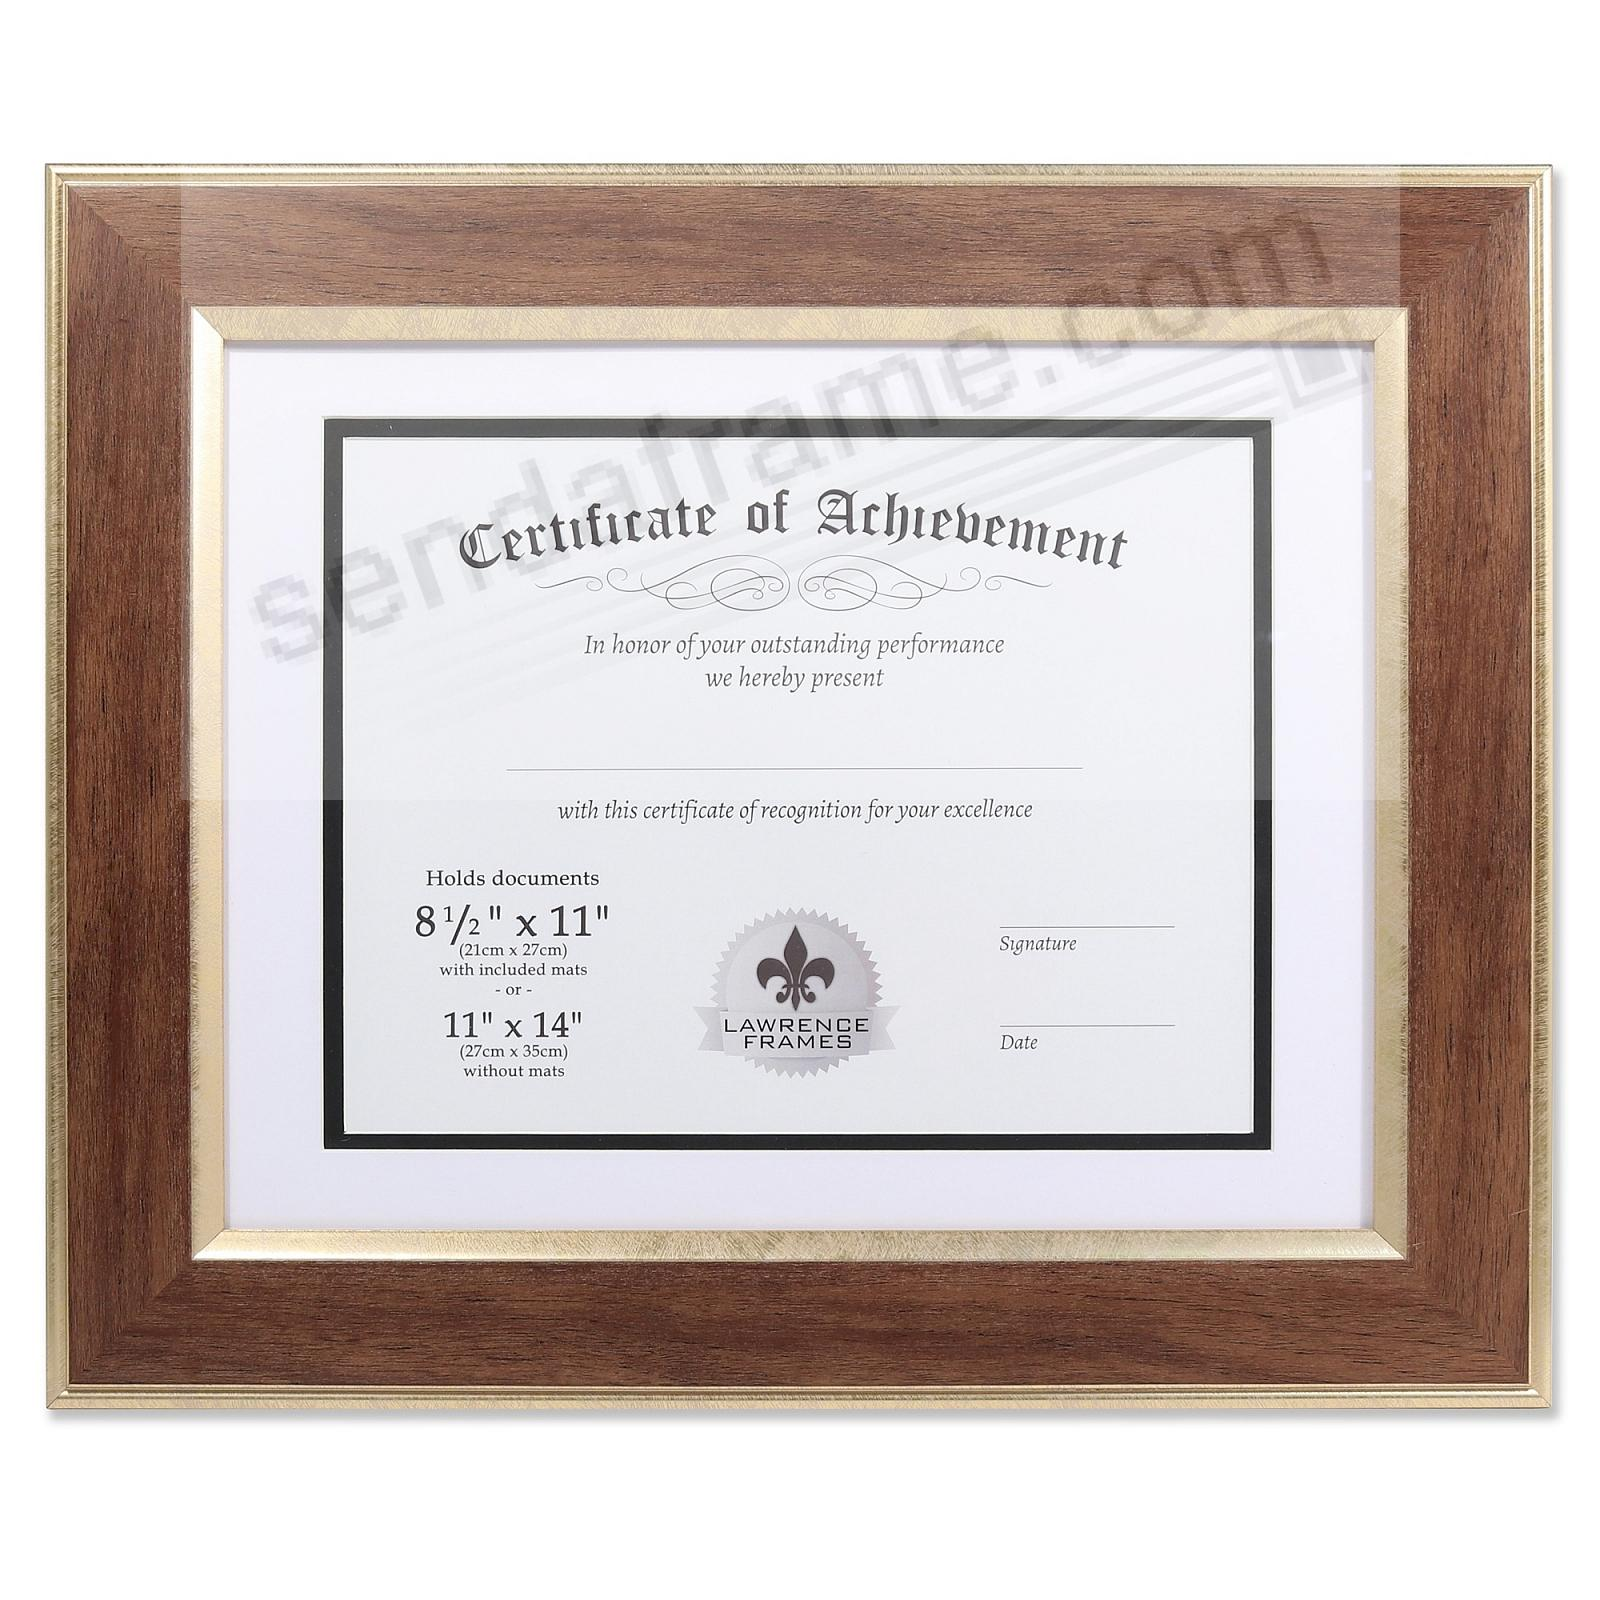 Walnut-Brown Document Matted 14x11/11x8½ (DUAL USE) by Lawrence®